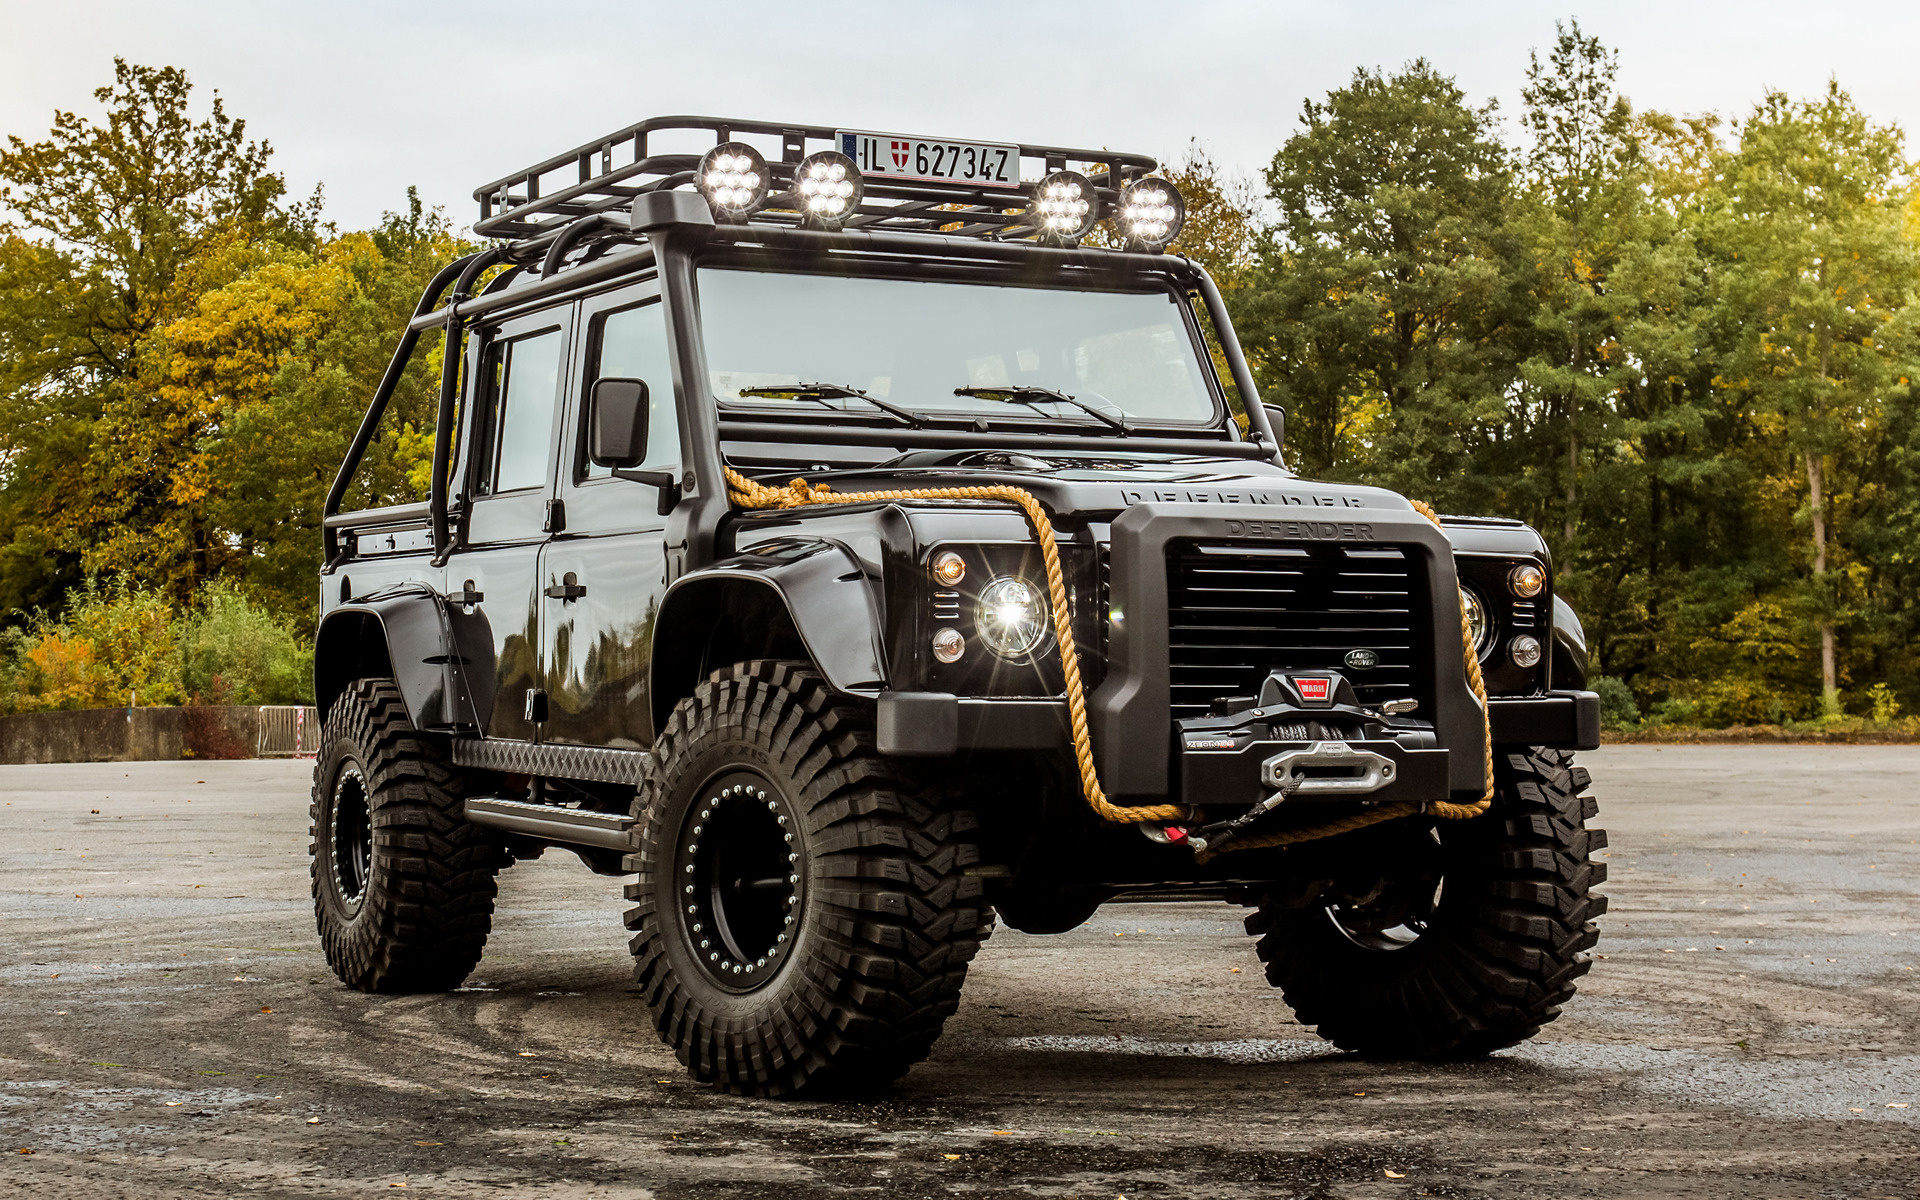 Land Rover Defender 007 Spectre 2015 Wallpapers And Hd